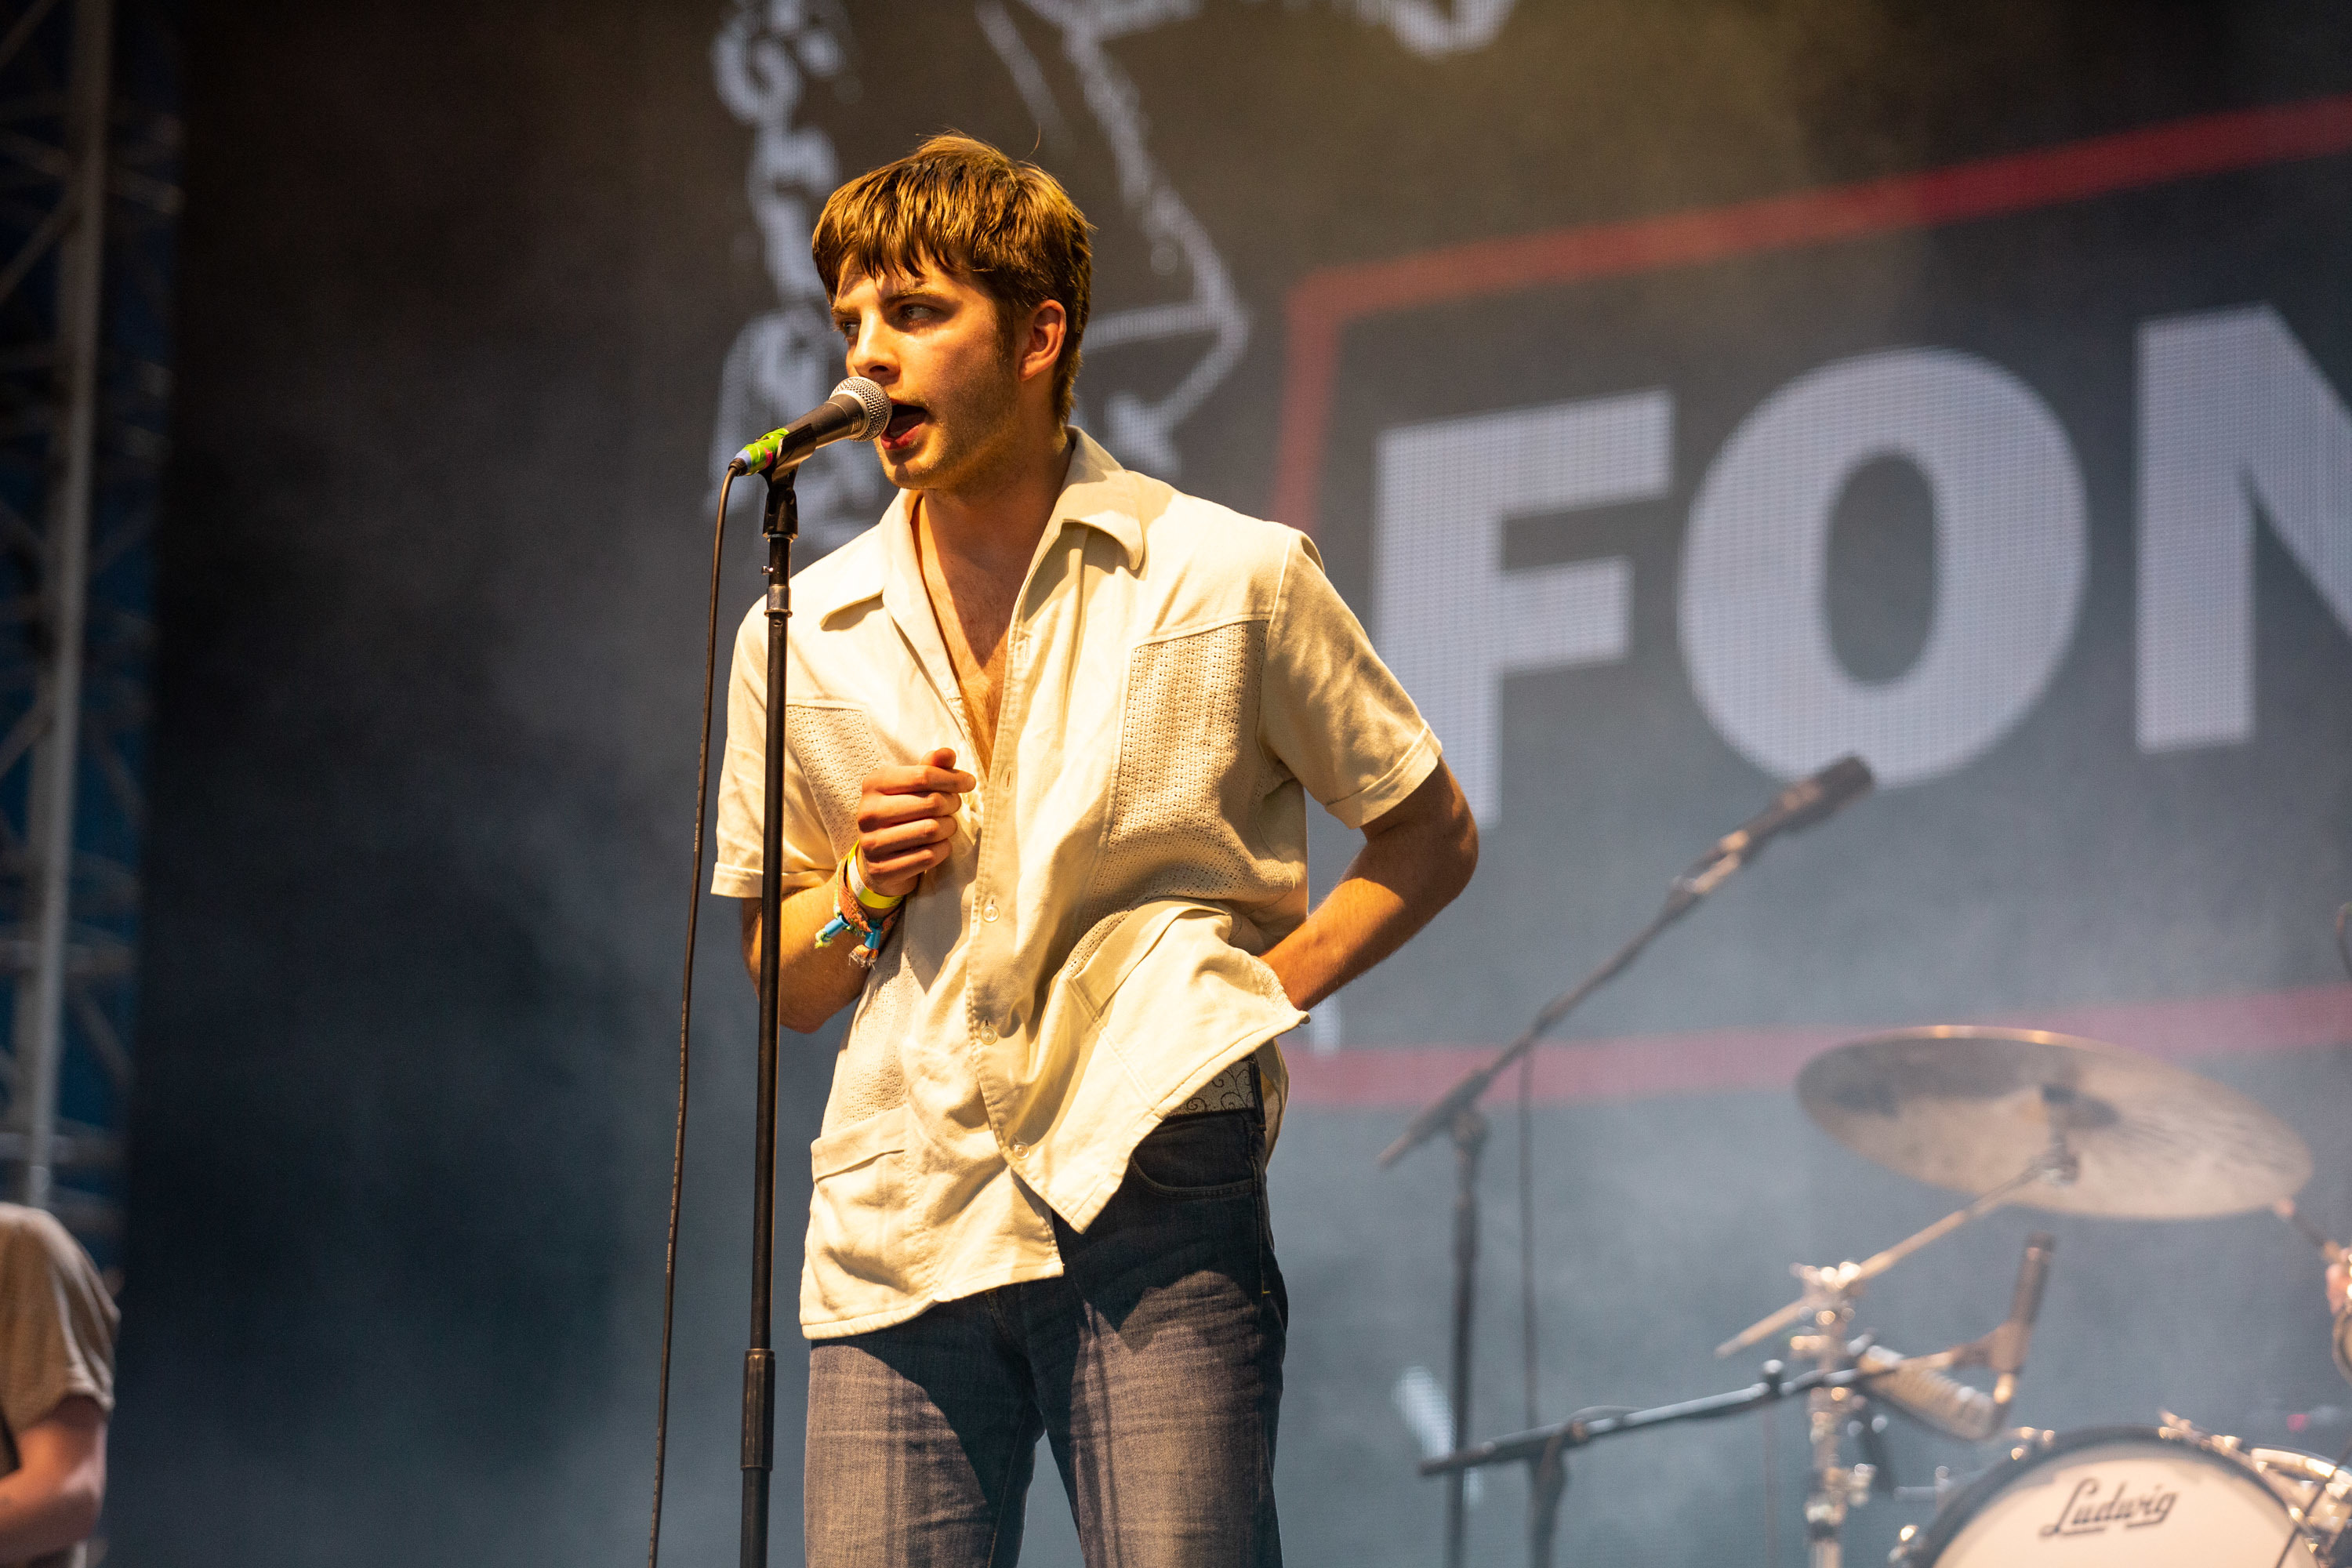 Fontaines DC grab a last-minute opportunity and set the John Peel Stage alight at Glastonbury 2019